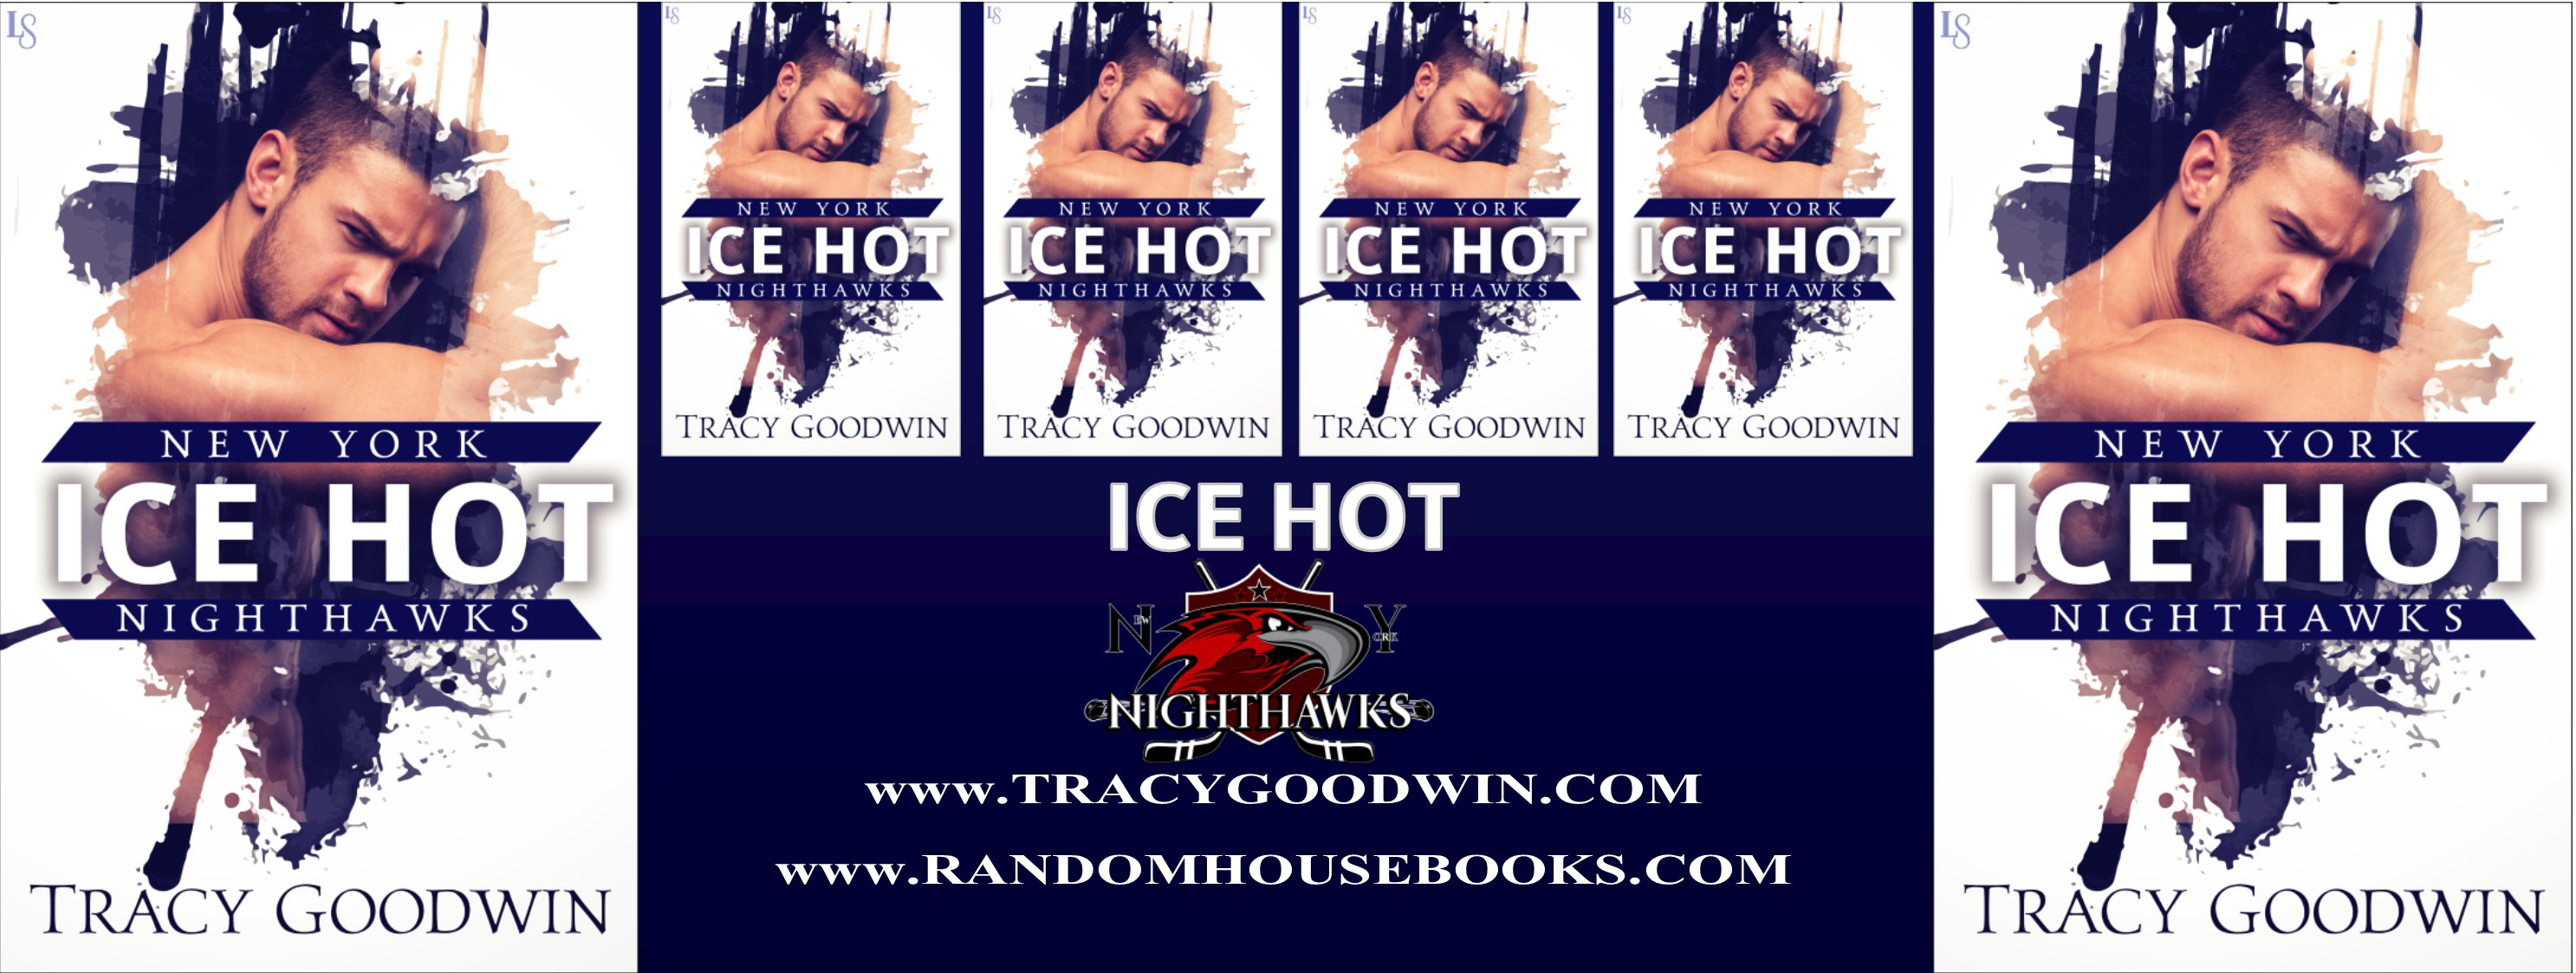 ICE HOT: A NEW YORK NIGHTHAWKS NOVEL cover reveal!